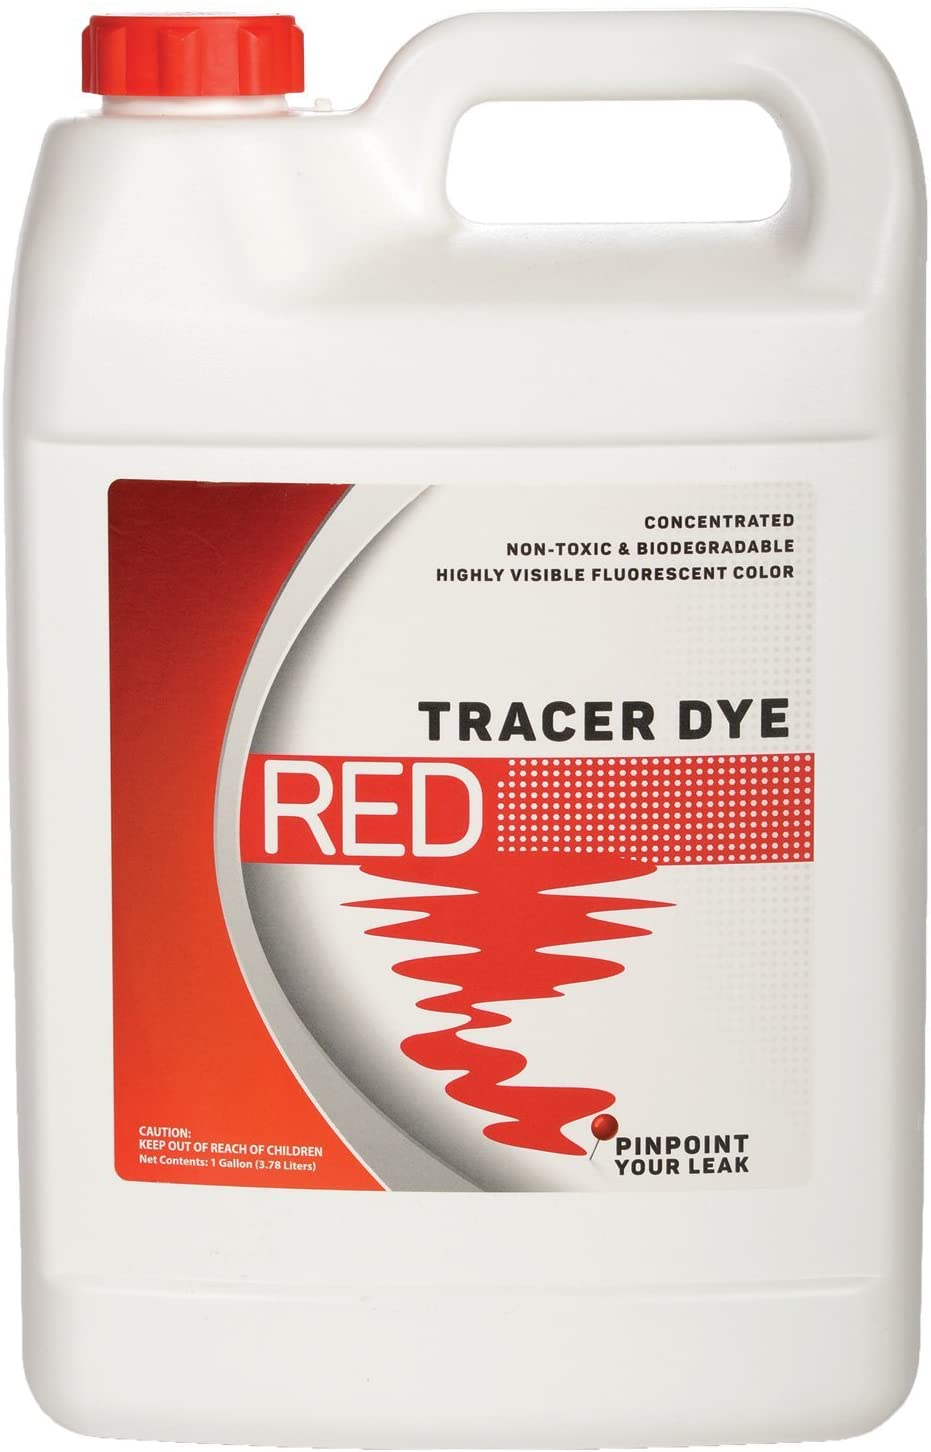 Bluewater Chemgroup Concentrated Red Tracer Dye - One Gallon (128 Ounces)